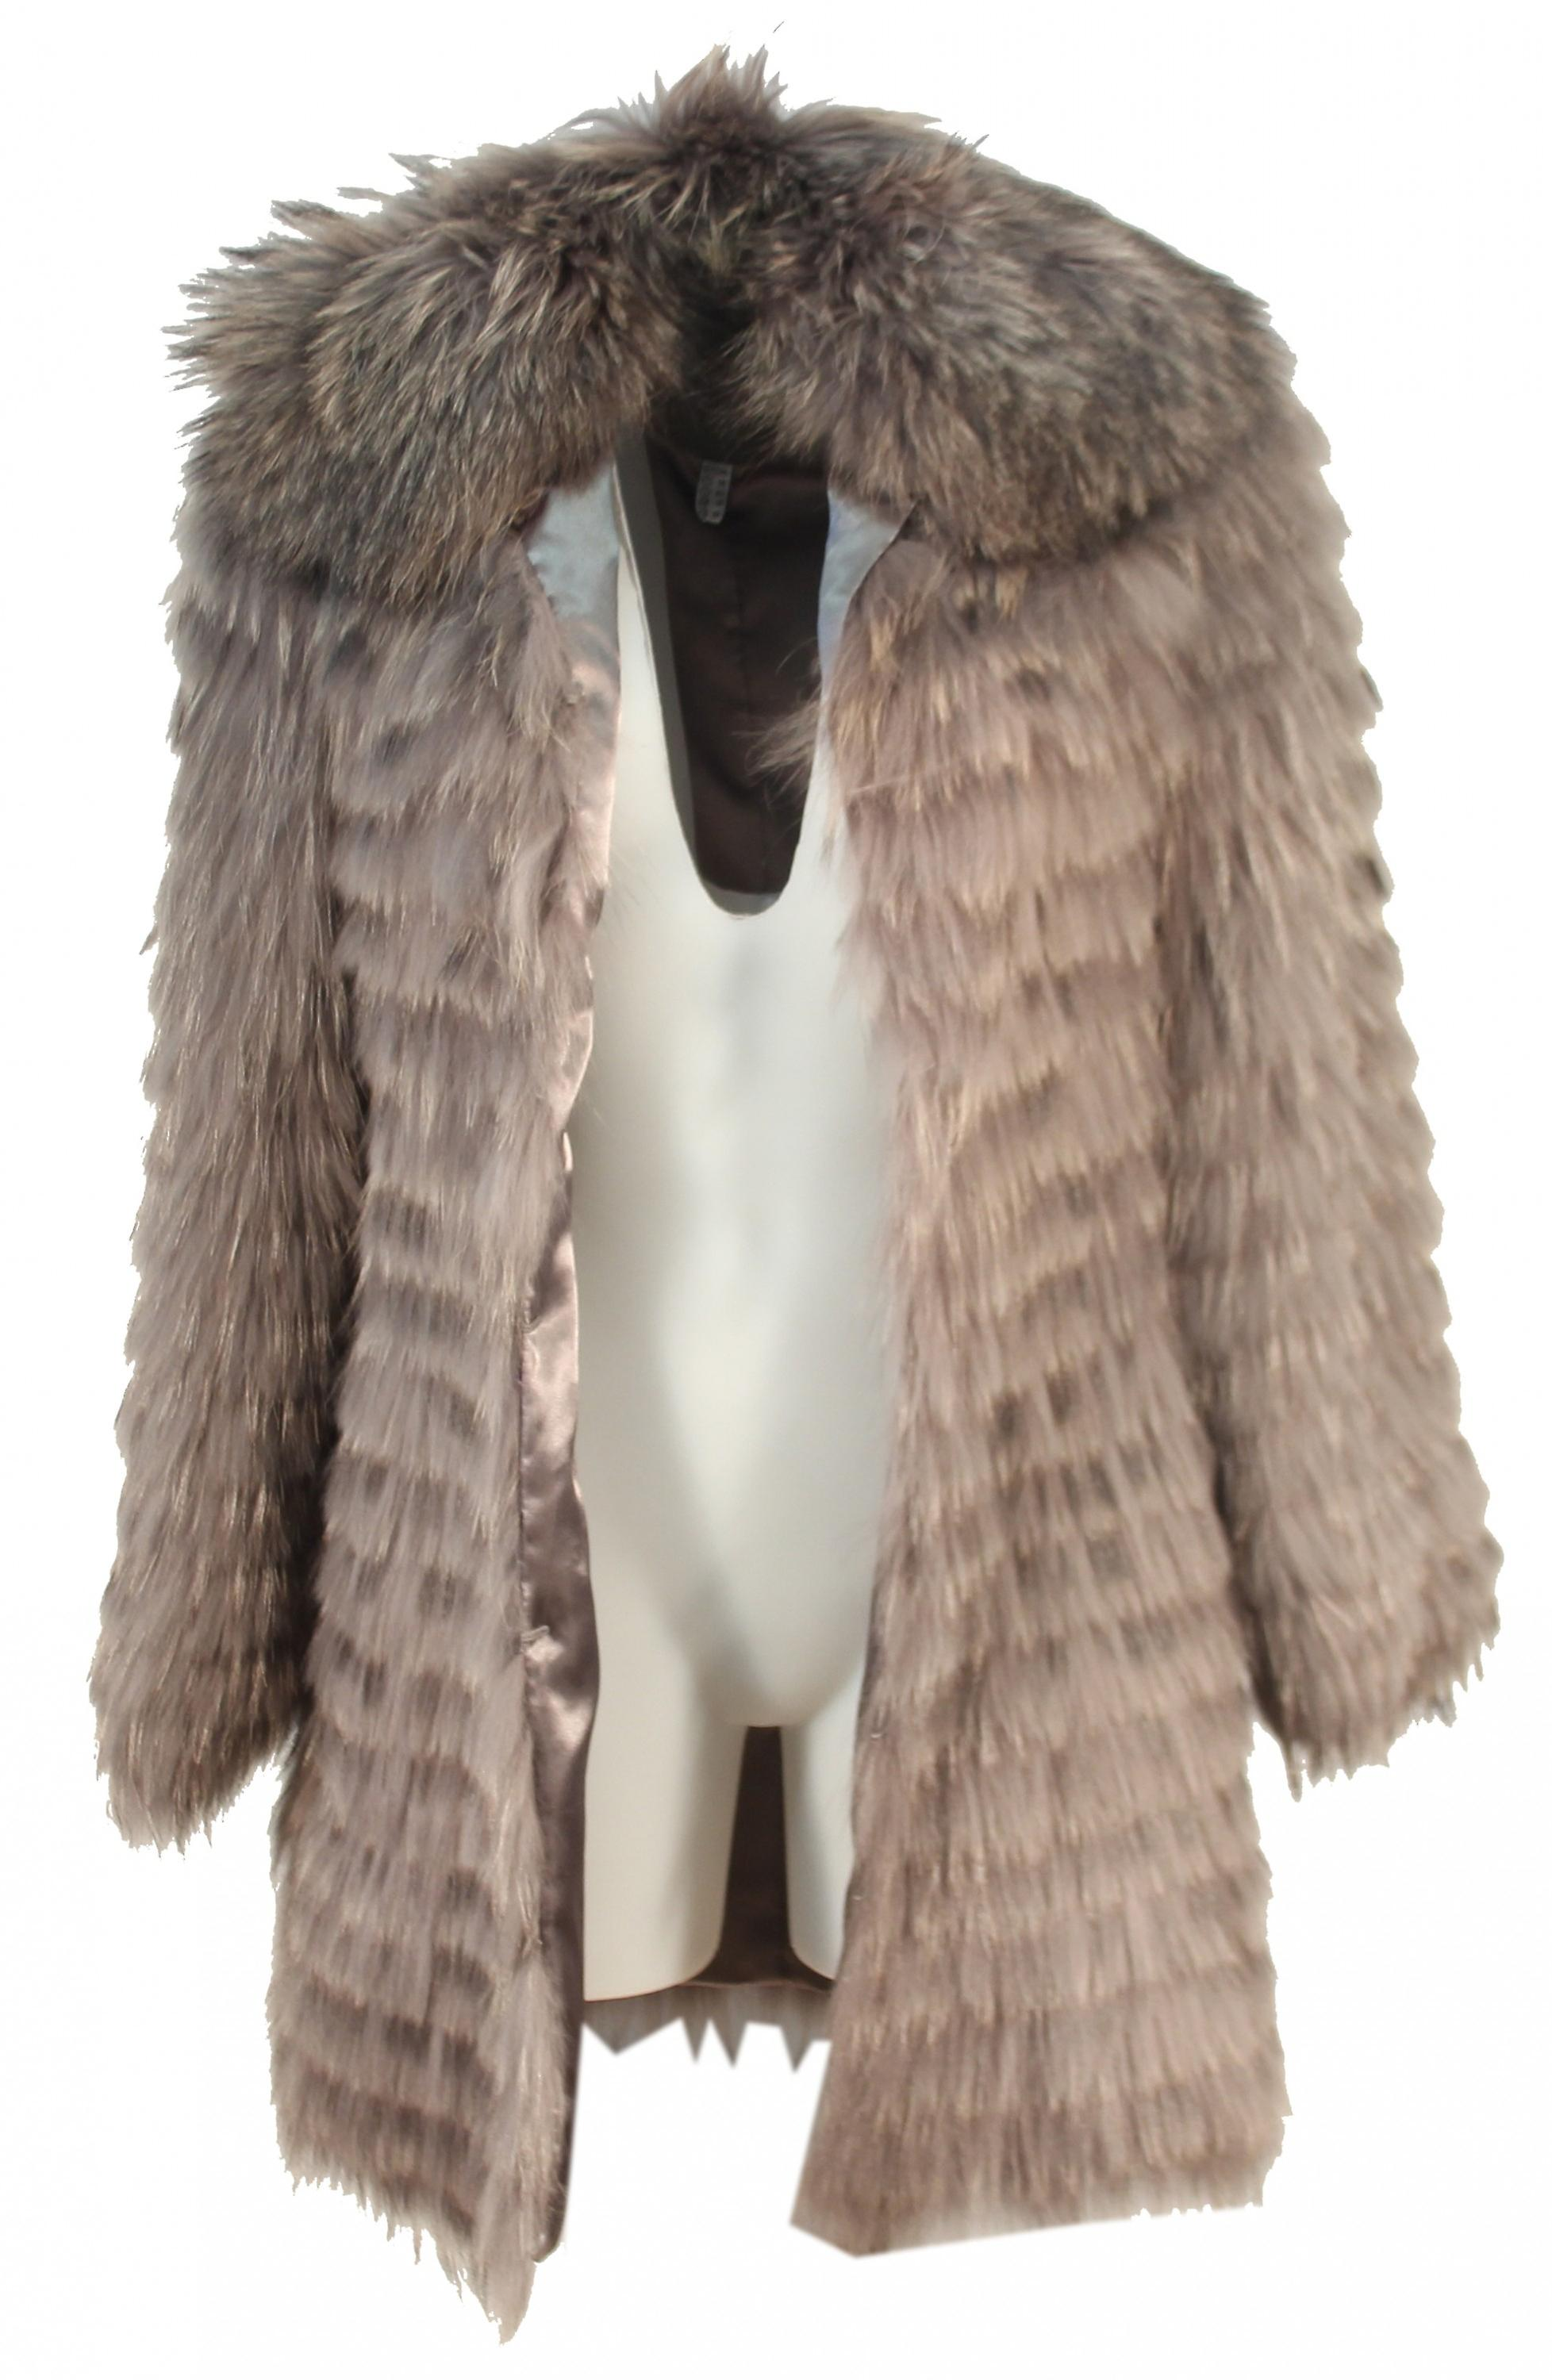 Finola - high-quality fur coats for women rabbit fur rabbit Brown grey beige